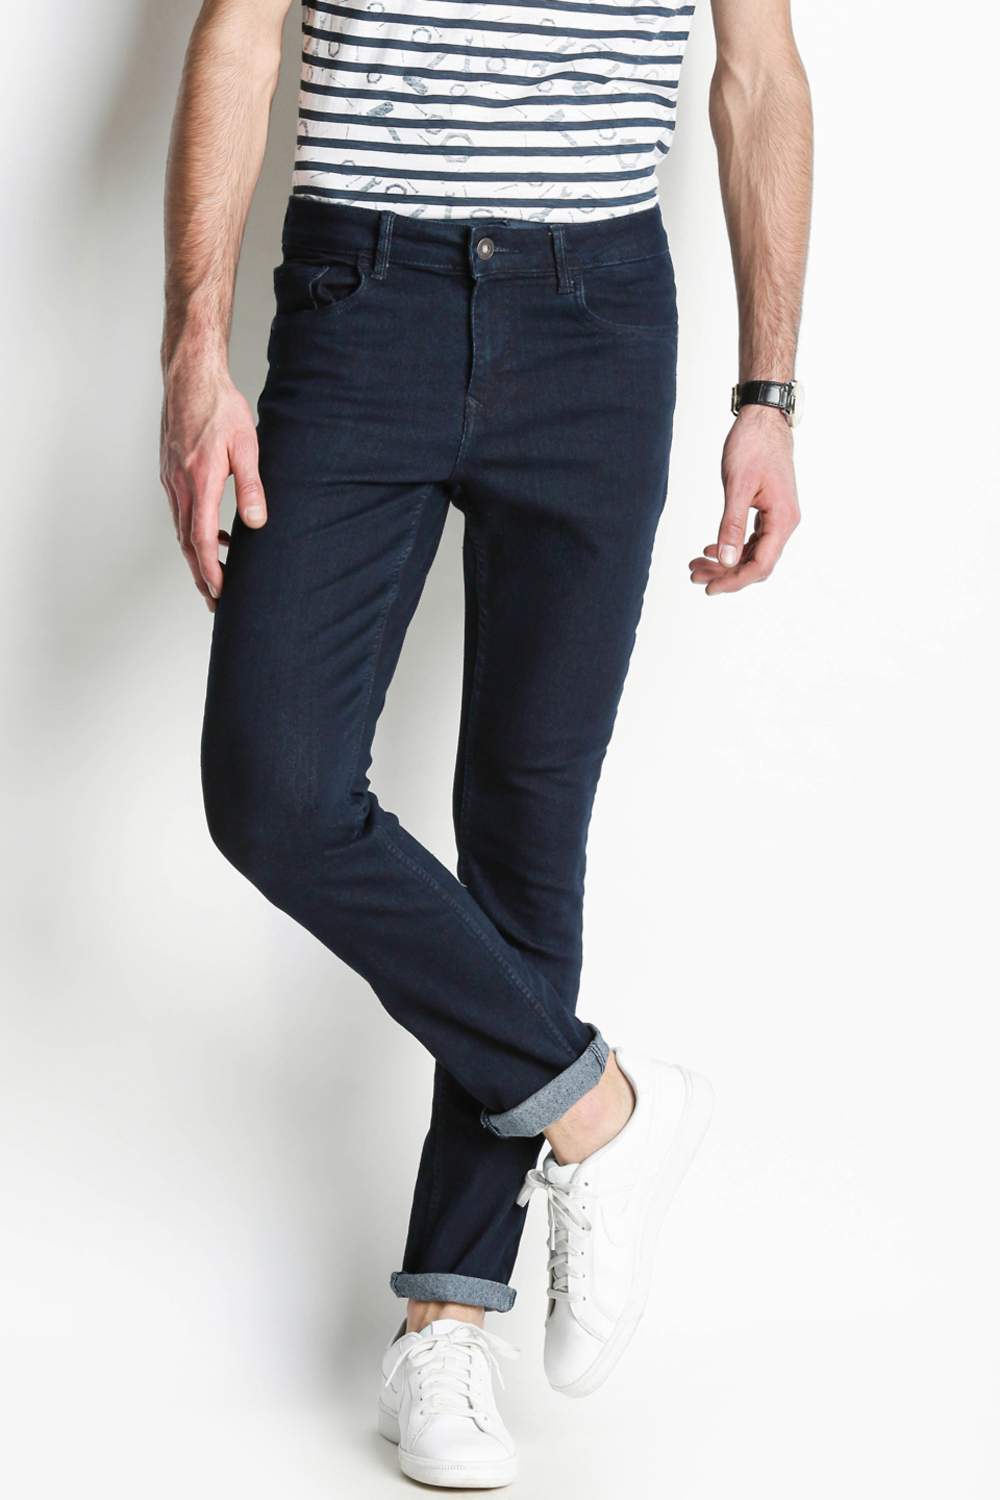 273cc6cda9 Buy Men Jeans Online in India - Best Jeans for Men